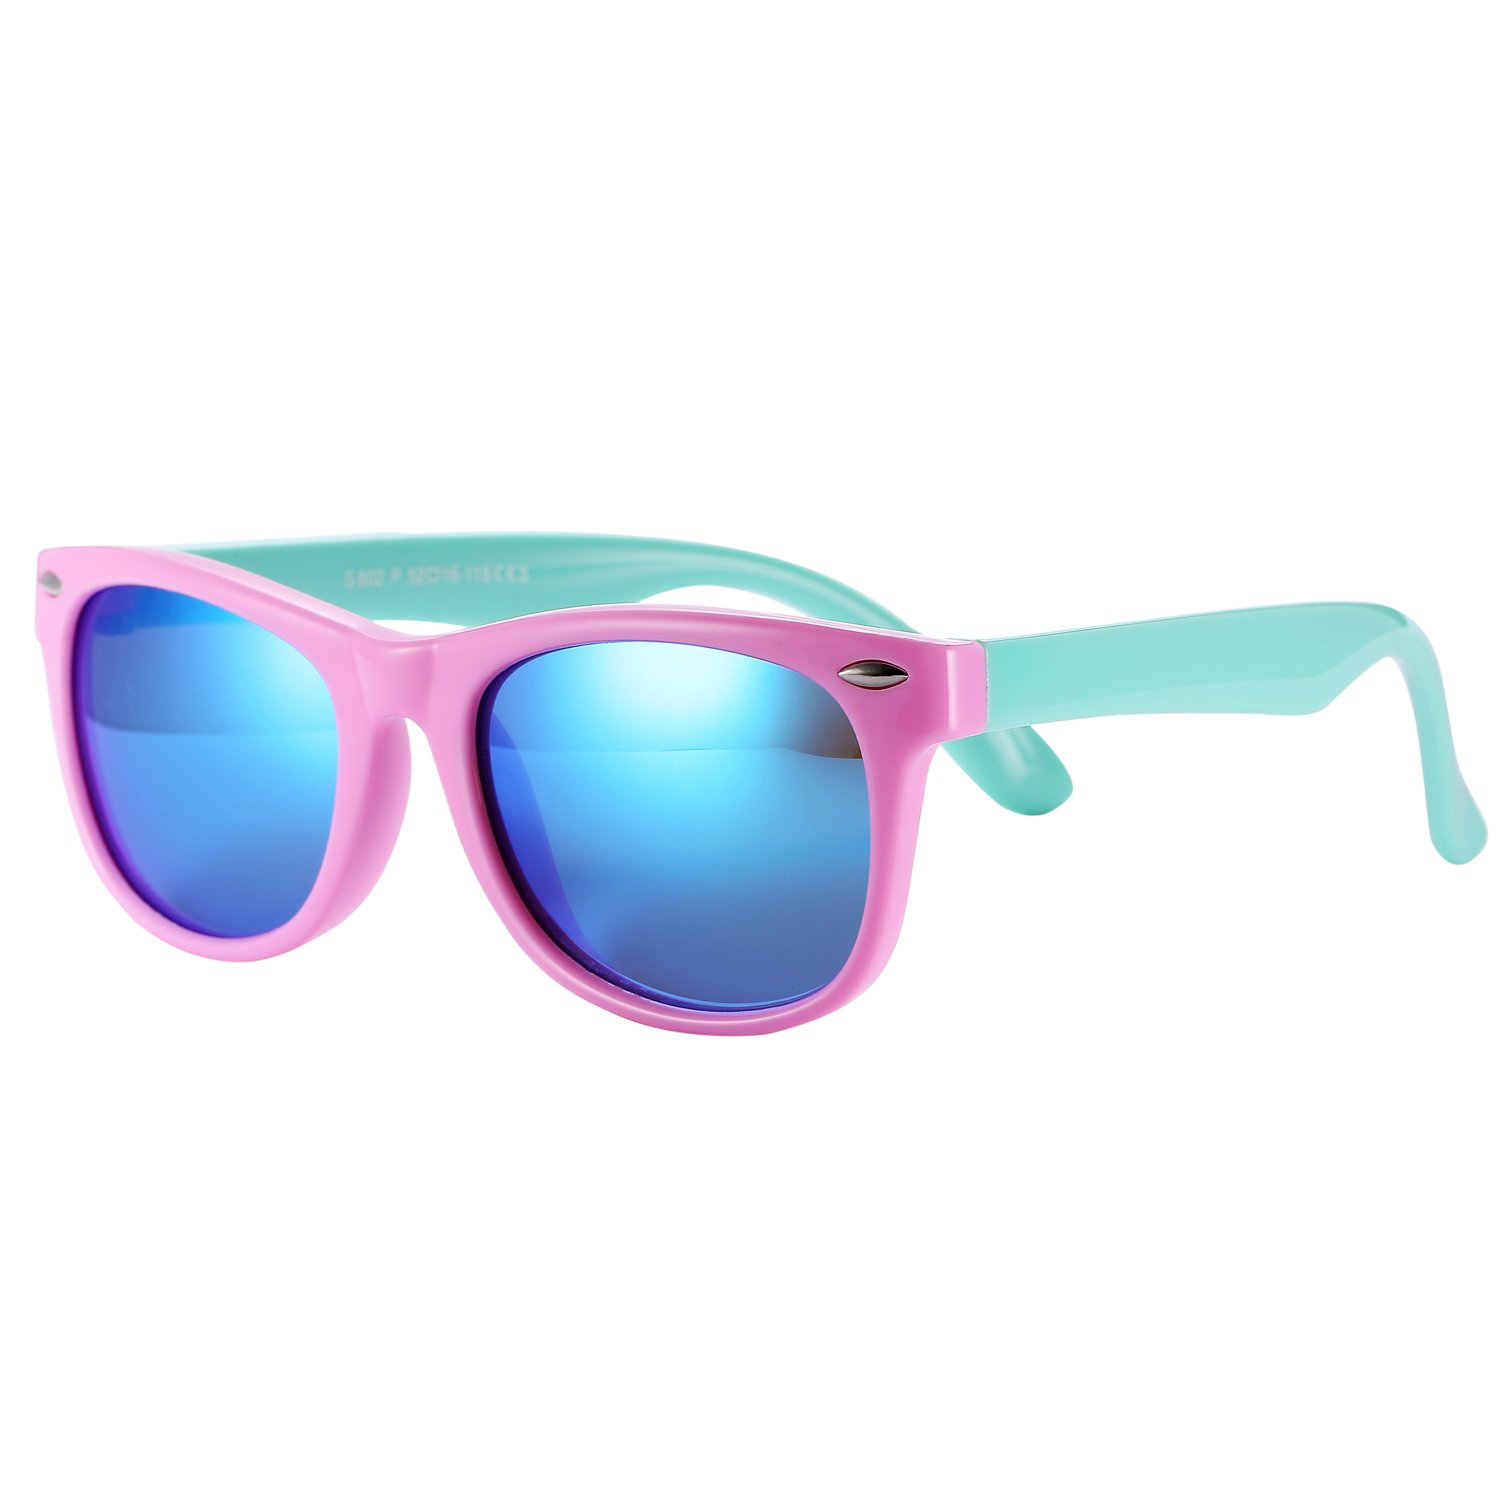 Pro Acme TPEE Rubber Flexible Kids Polarized Wayfarer Sunglasses for Baby and Children Age 3-10 (Pink Frame/Blue Mirrored Lens)